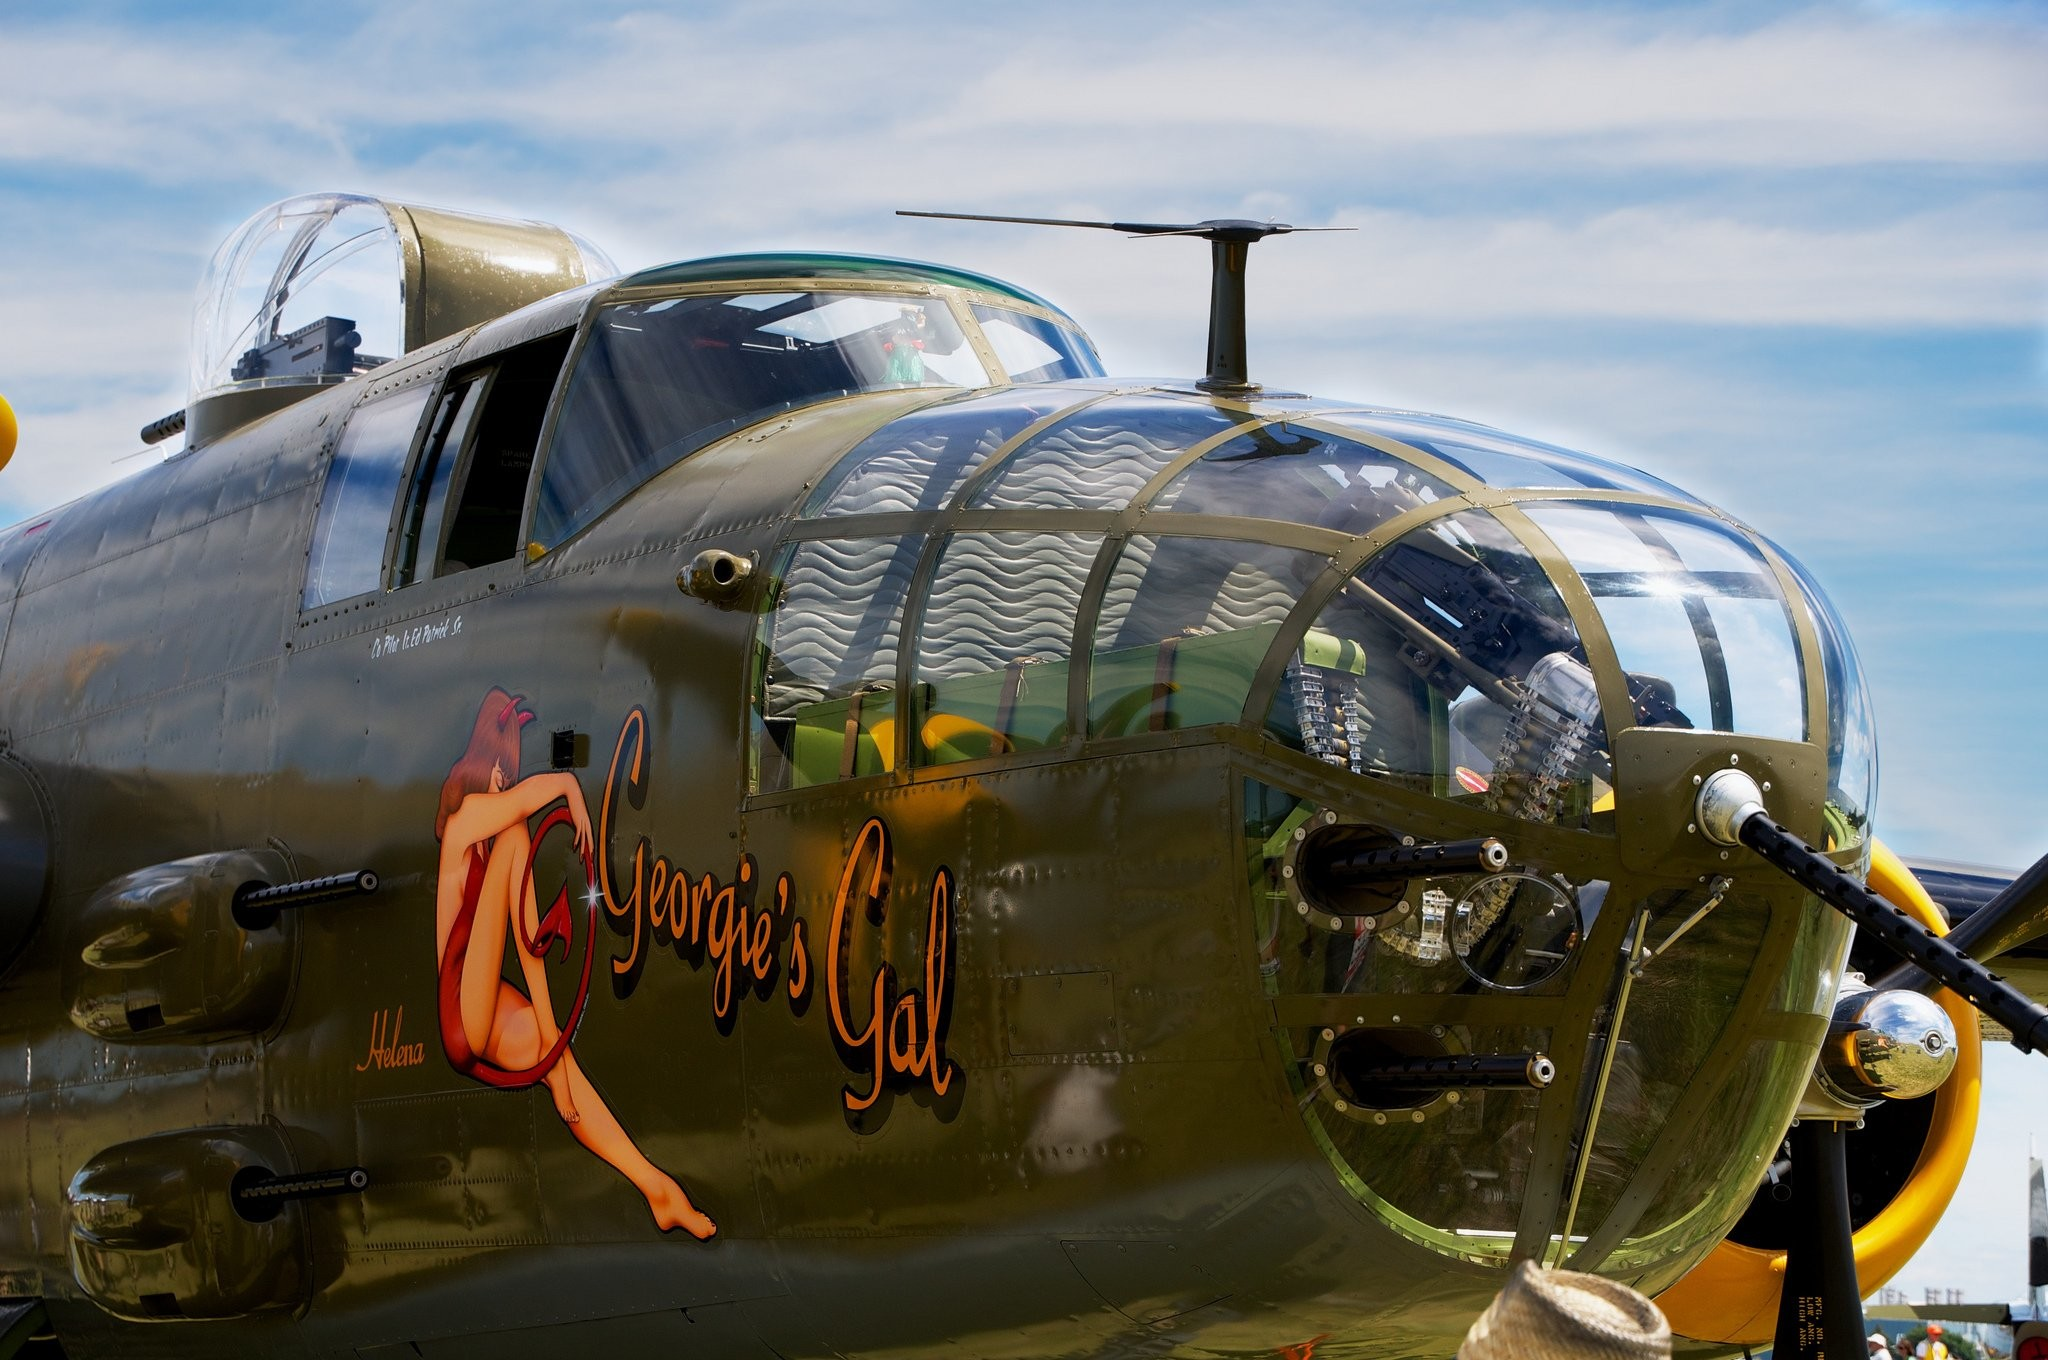 2048x1360 Nose Art aircrafts plane fighter pin-up wallpaper |  | 491522 |  WallpaperUP